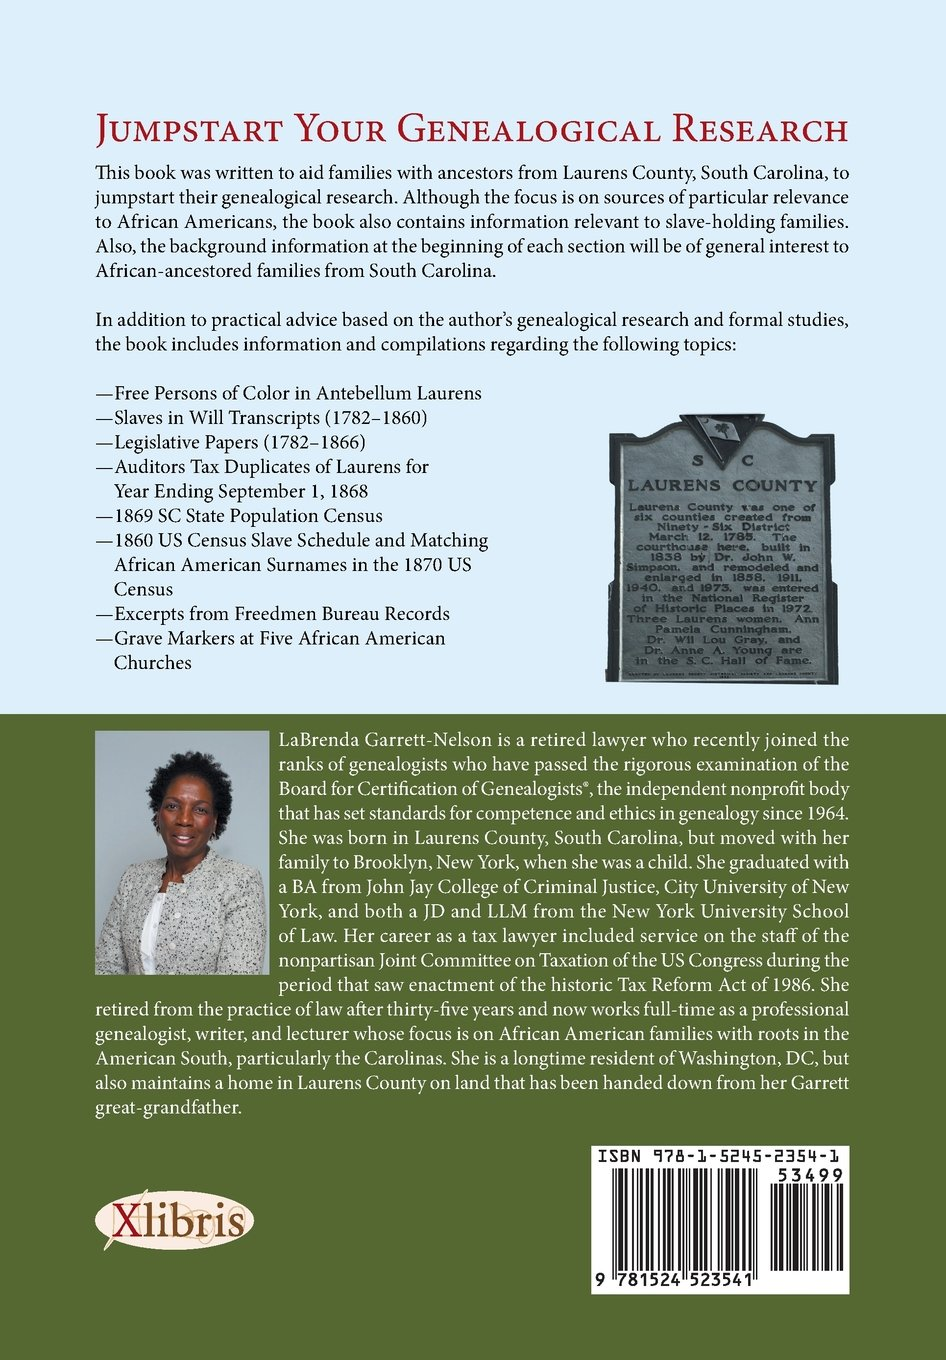 A Guide to Researching African American Ancestors in Laurens County ...